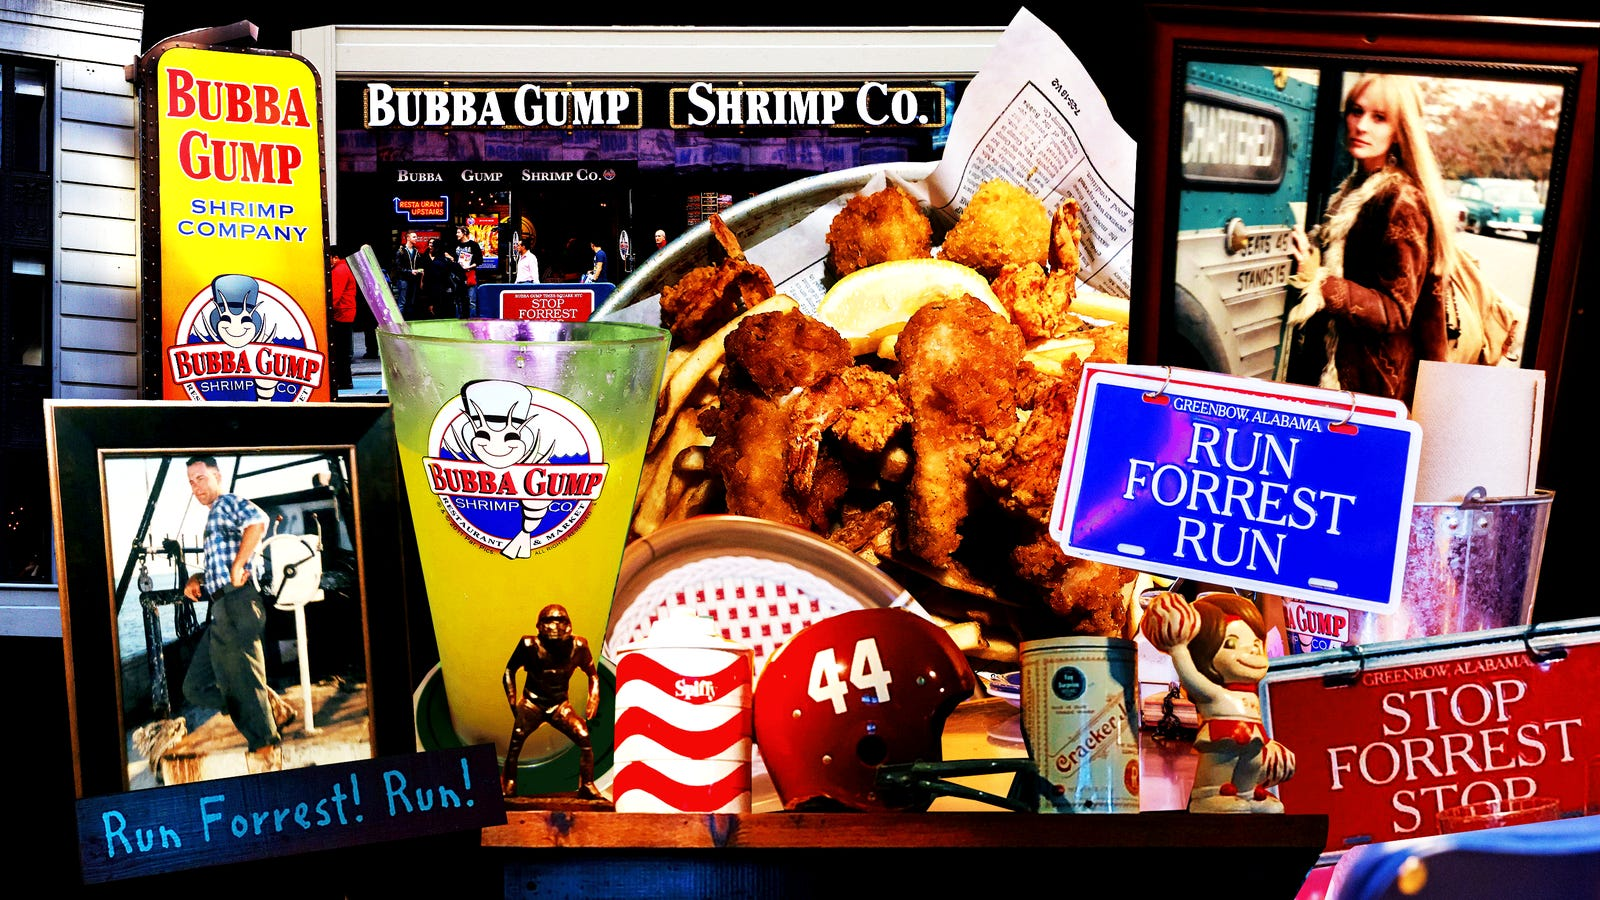 I Ate a 3,000-Calorie Lunch at Bubba Gump Shrimp Co. and I'm a Better Woman For It